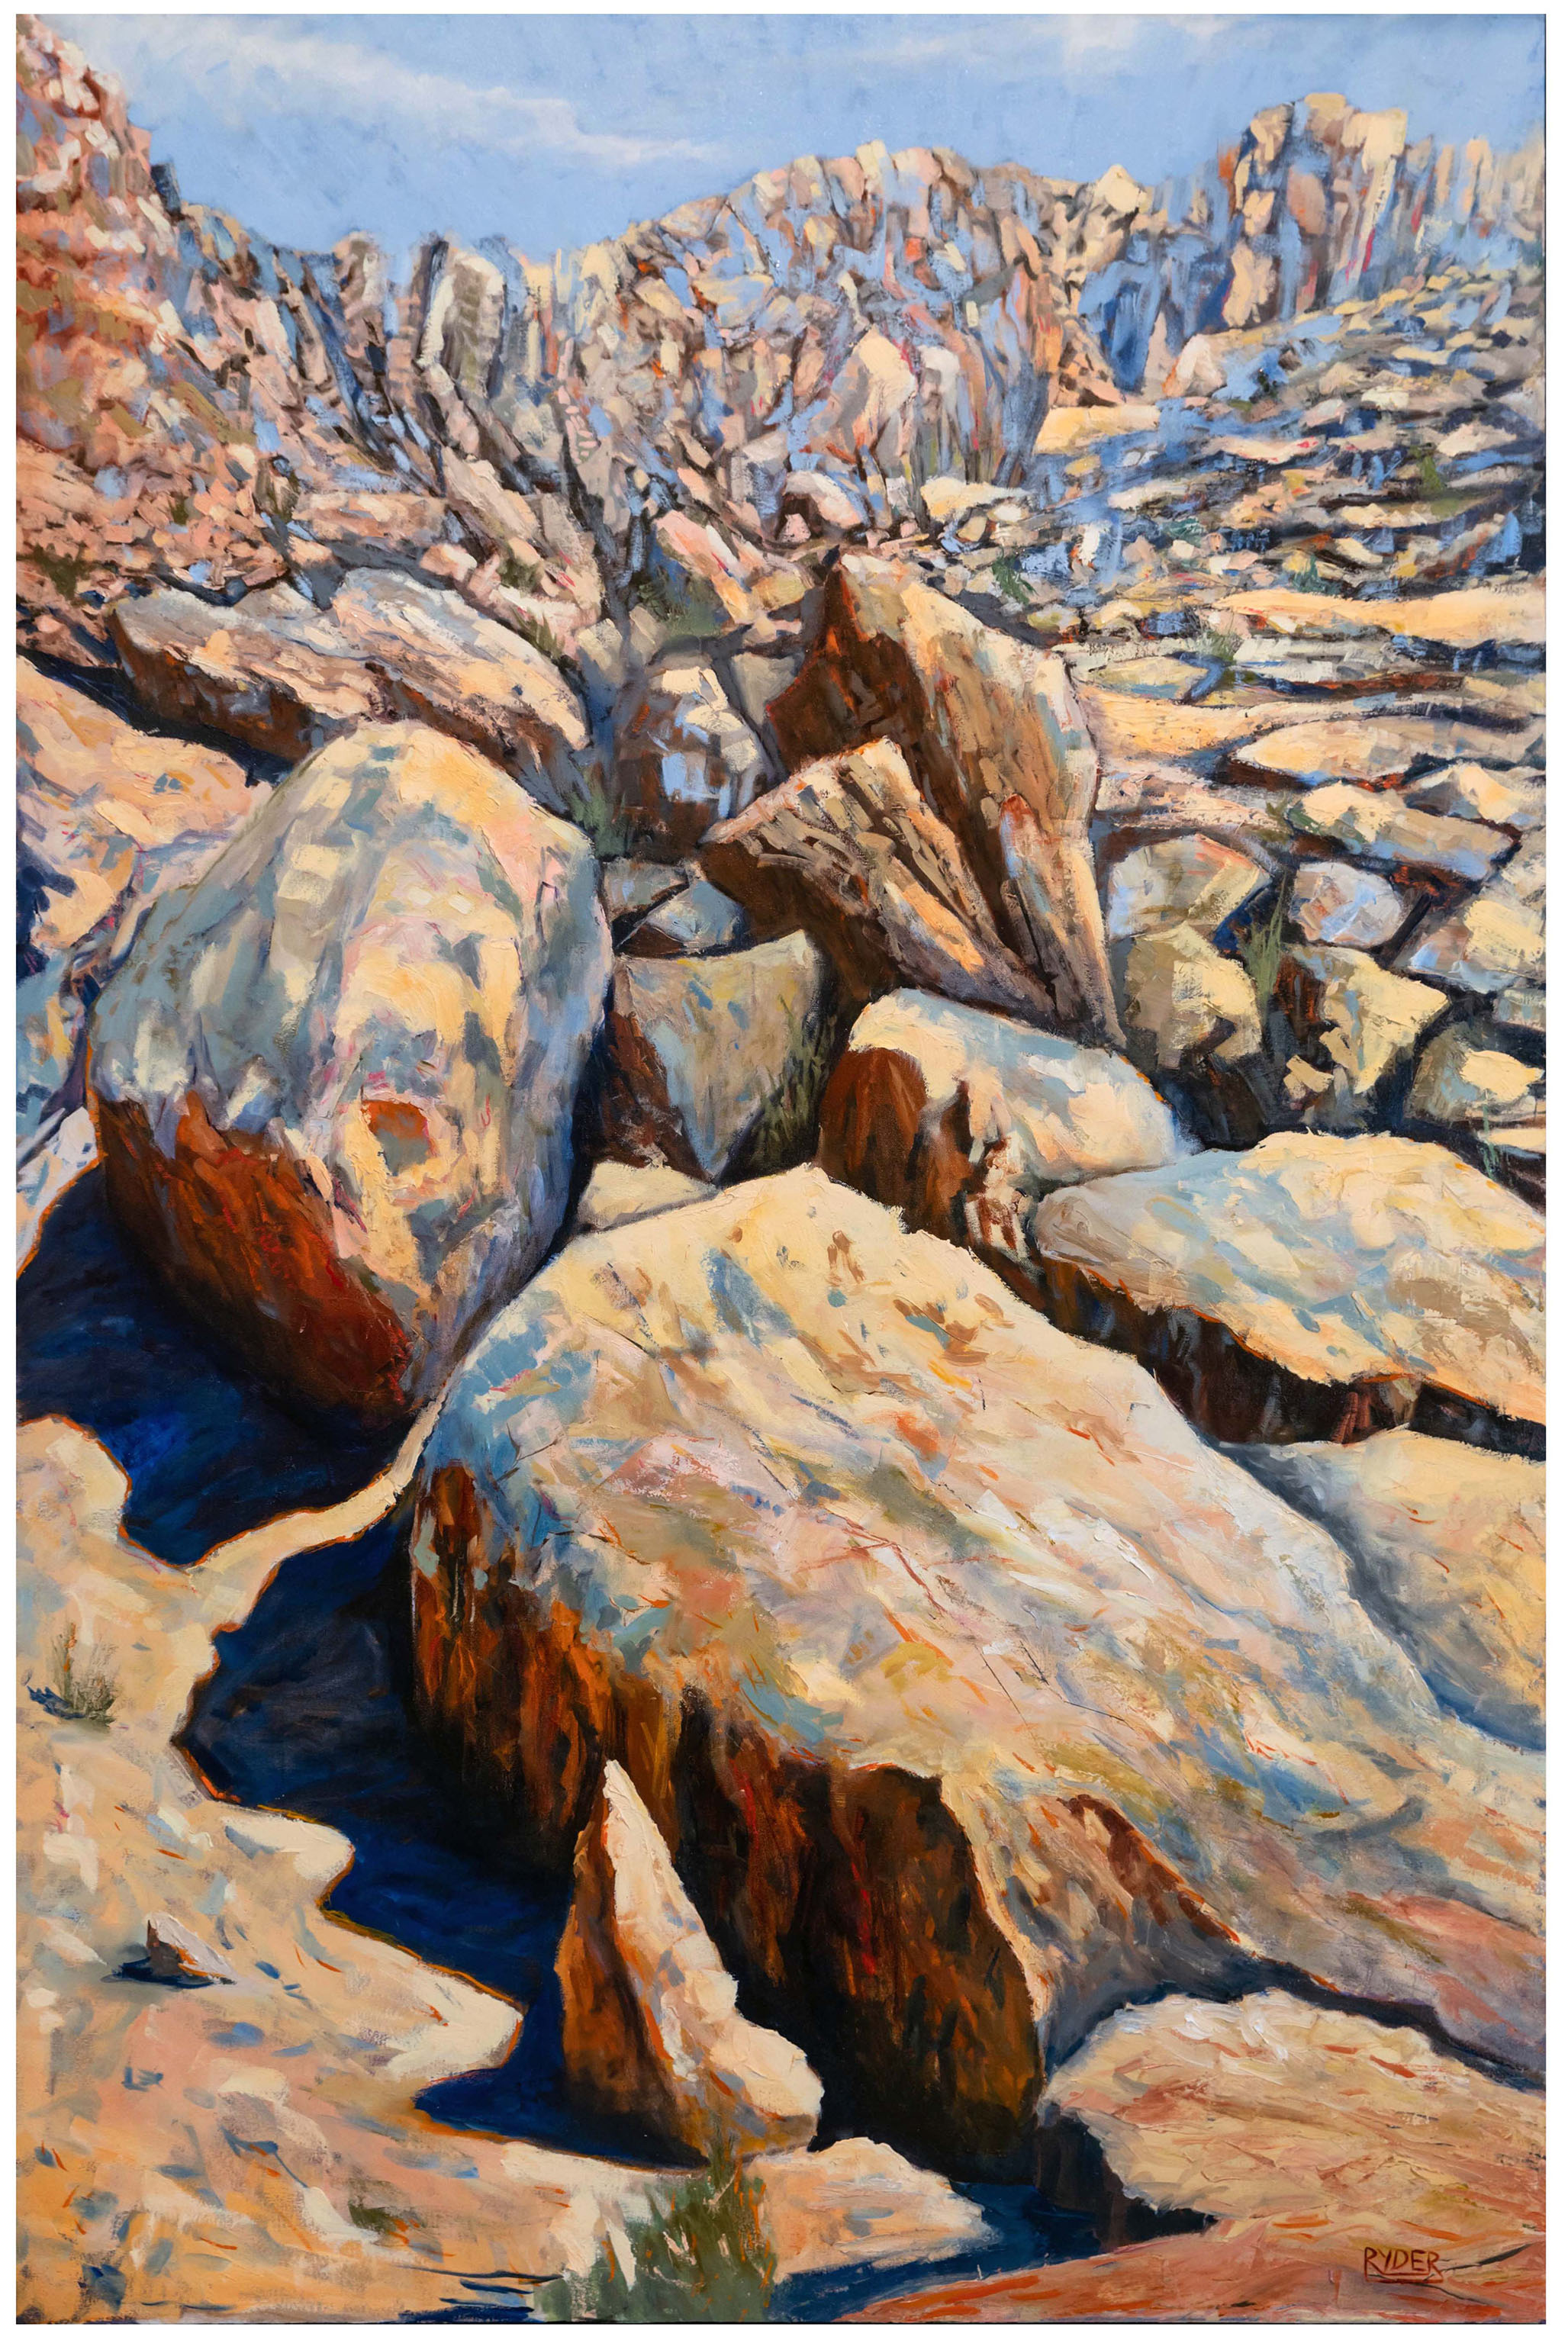 Jebel Hafeet climb - Oil on Canvas